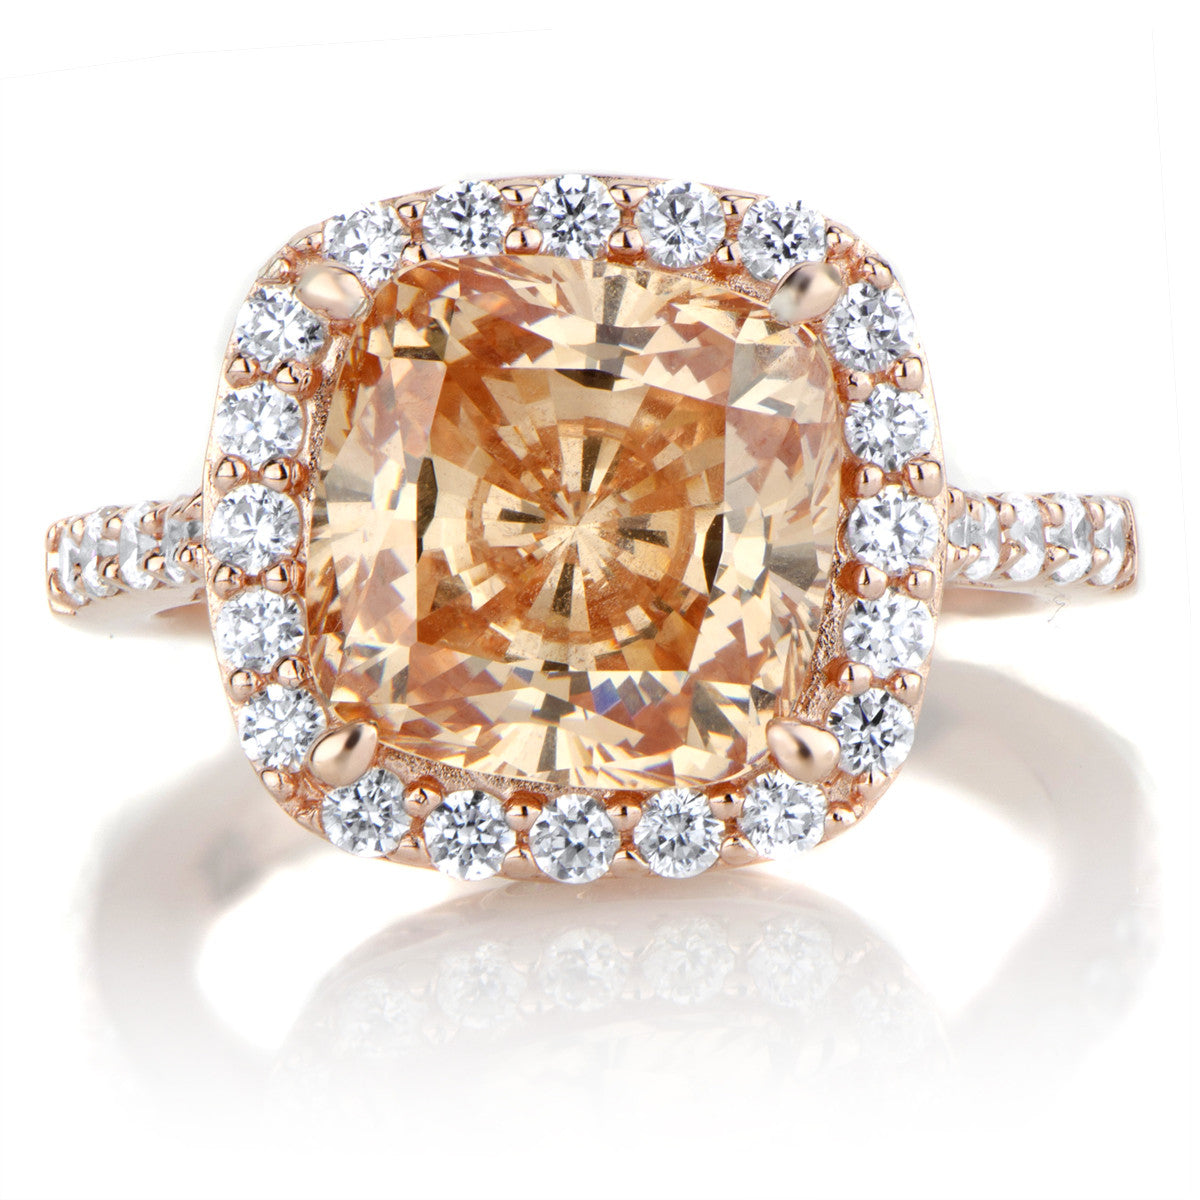 Rosewater Engagement Ring